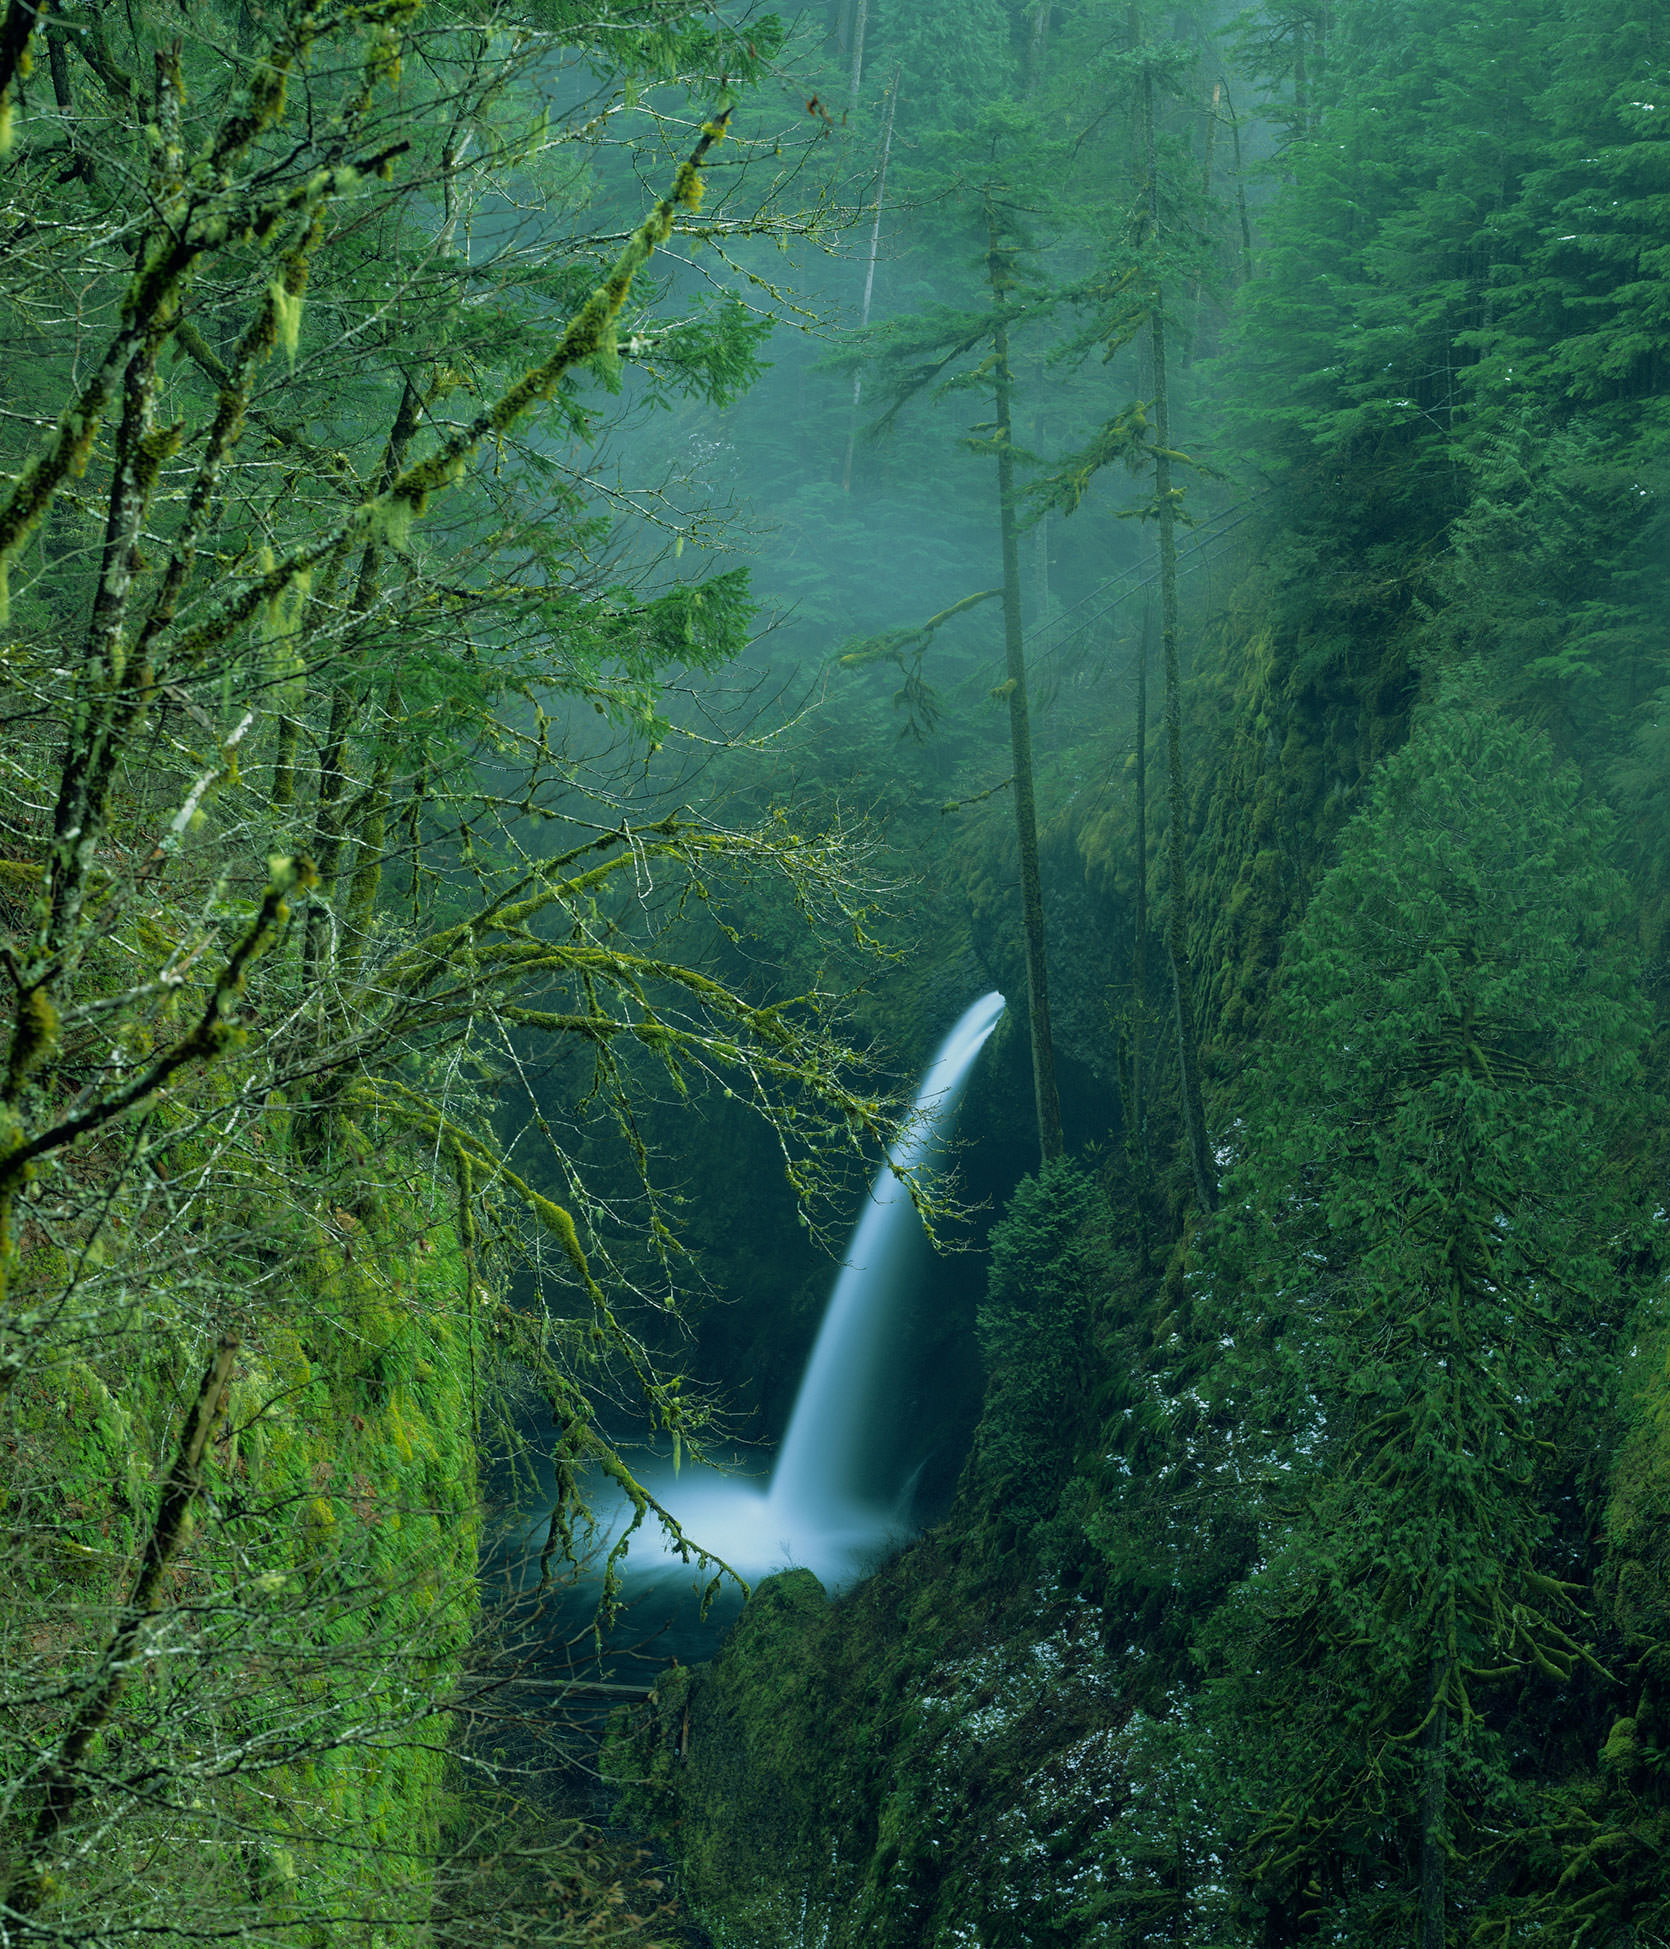 Image of Metlako Falls in the Eagle Creek Gorge within the vicinity of Portland, Oregon.